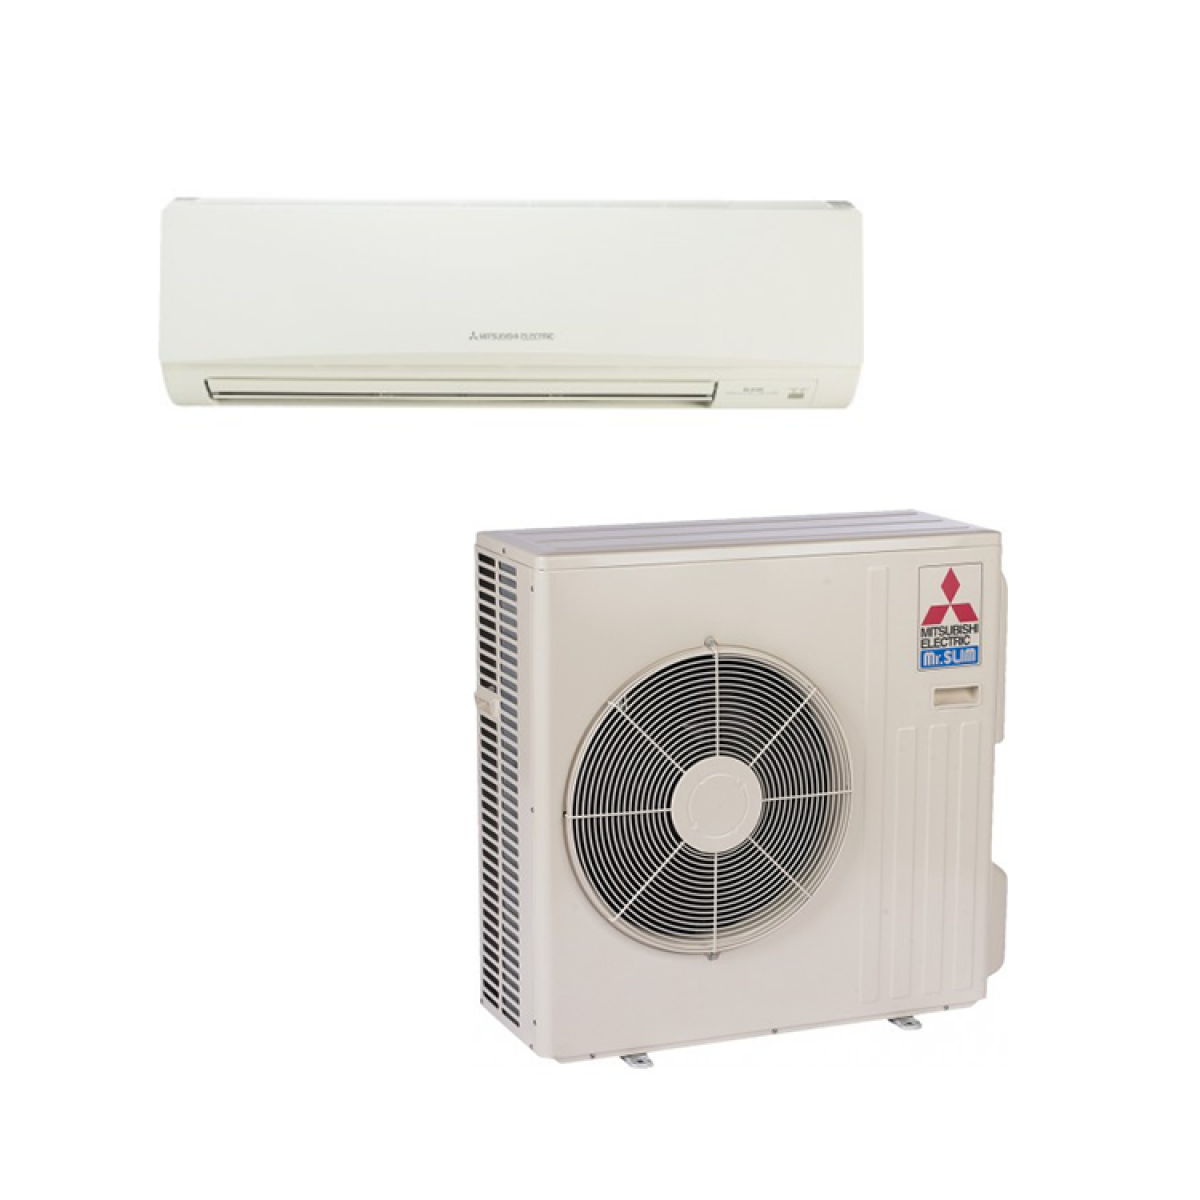 Mitsubishi Mr Slim 30 000 Btu Cooling Only Ductless Mini: ductless ac